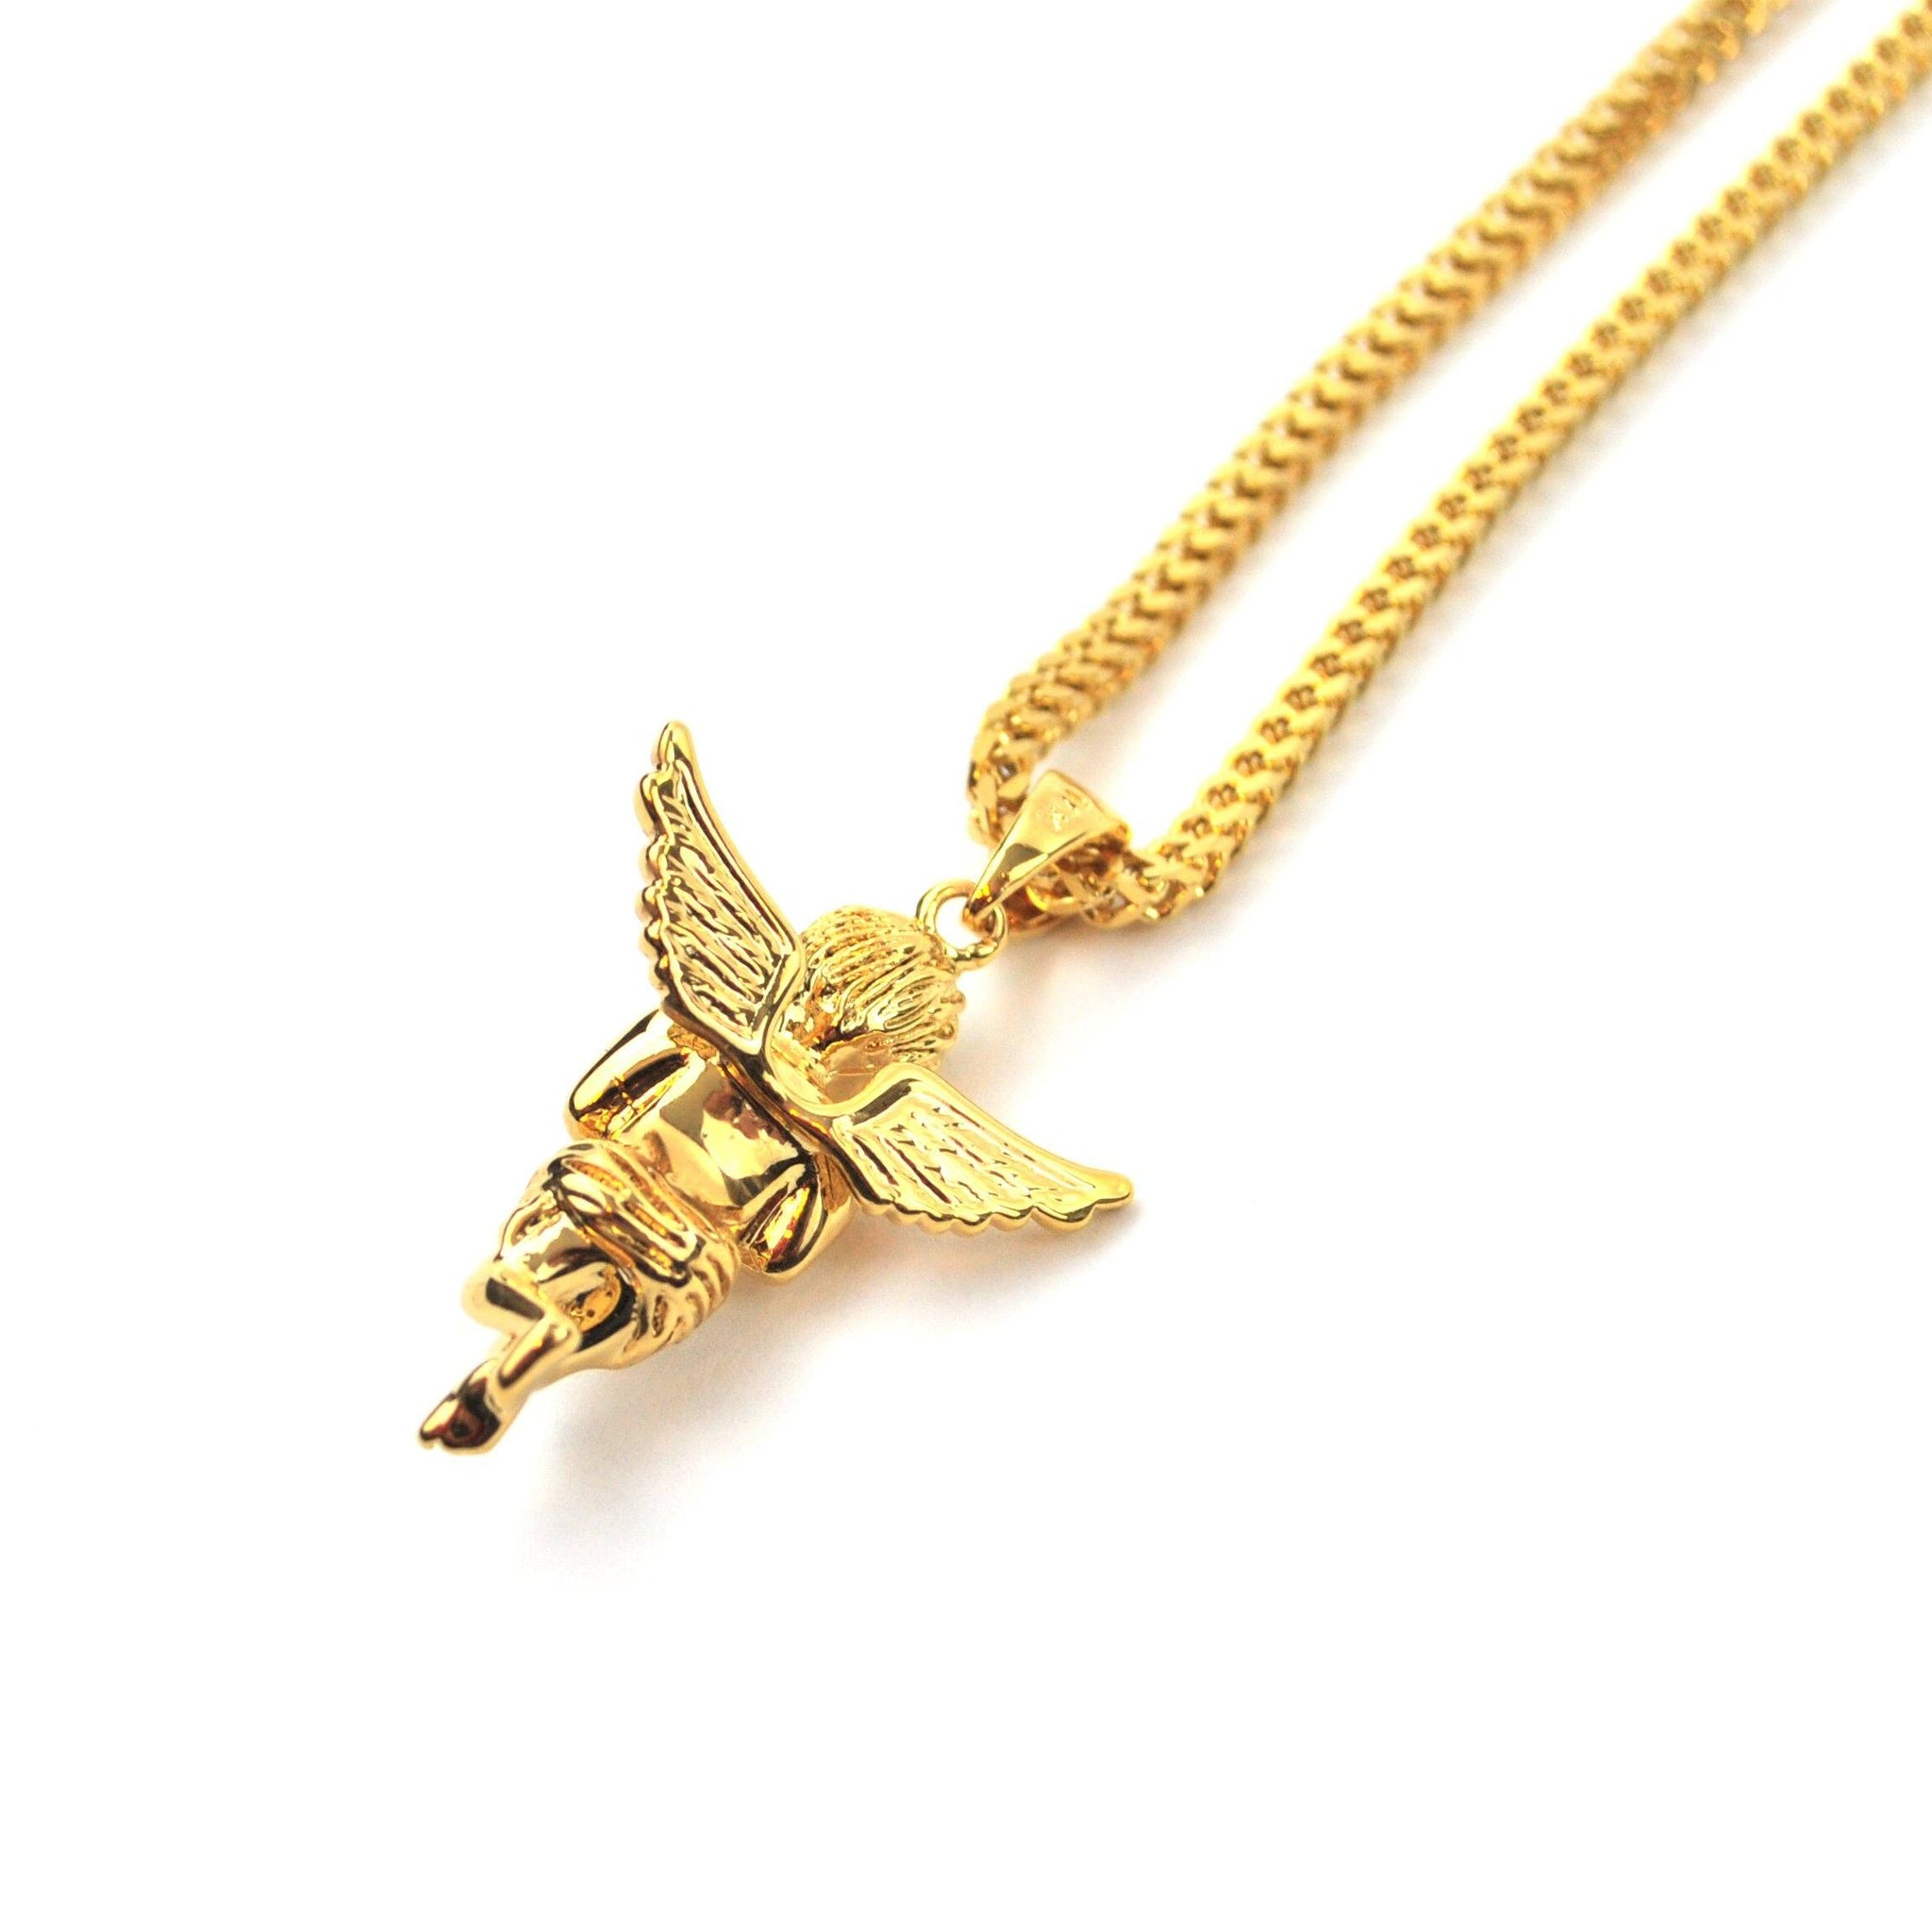 The gold gods designer jewelry and accessories micro angel piece necklace aloadofball